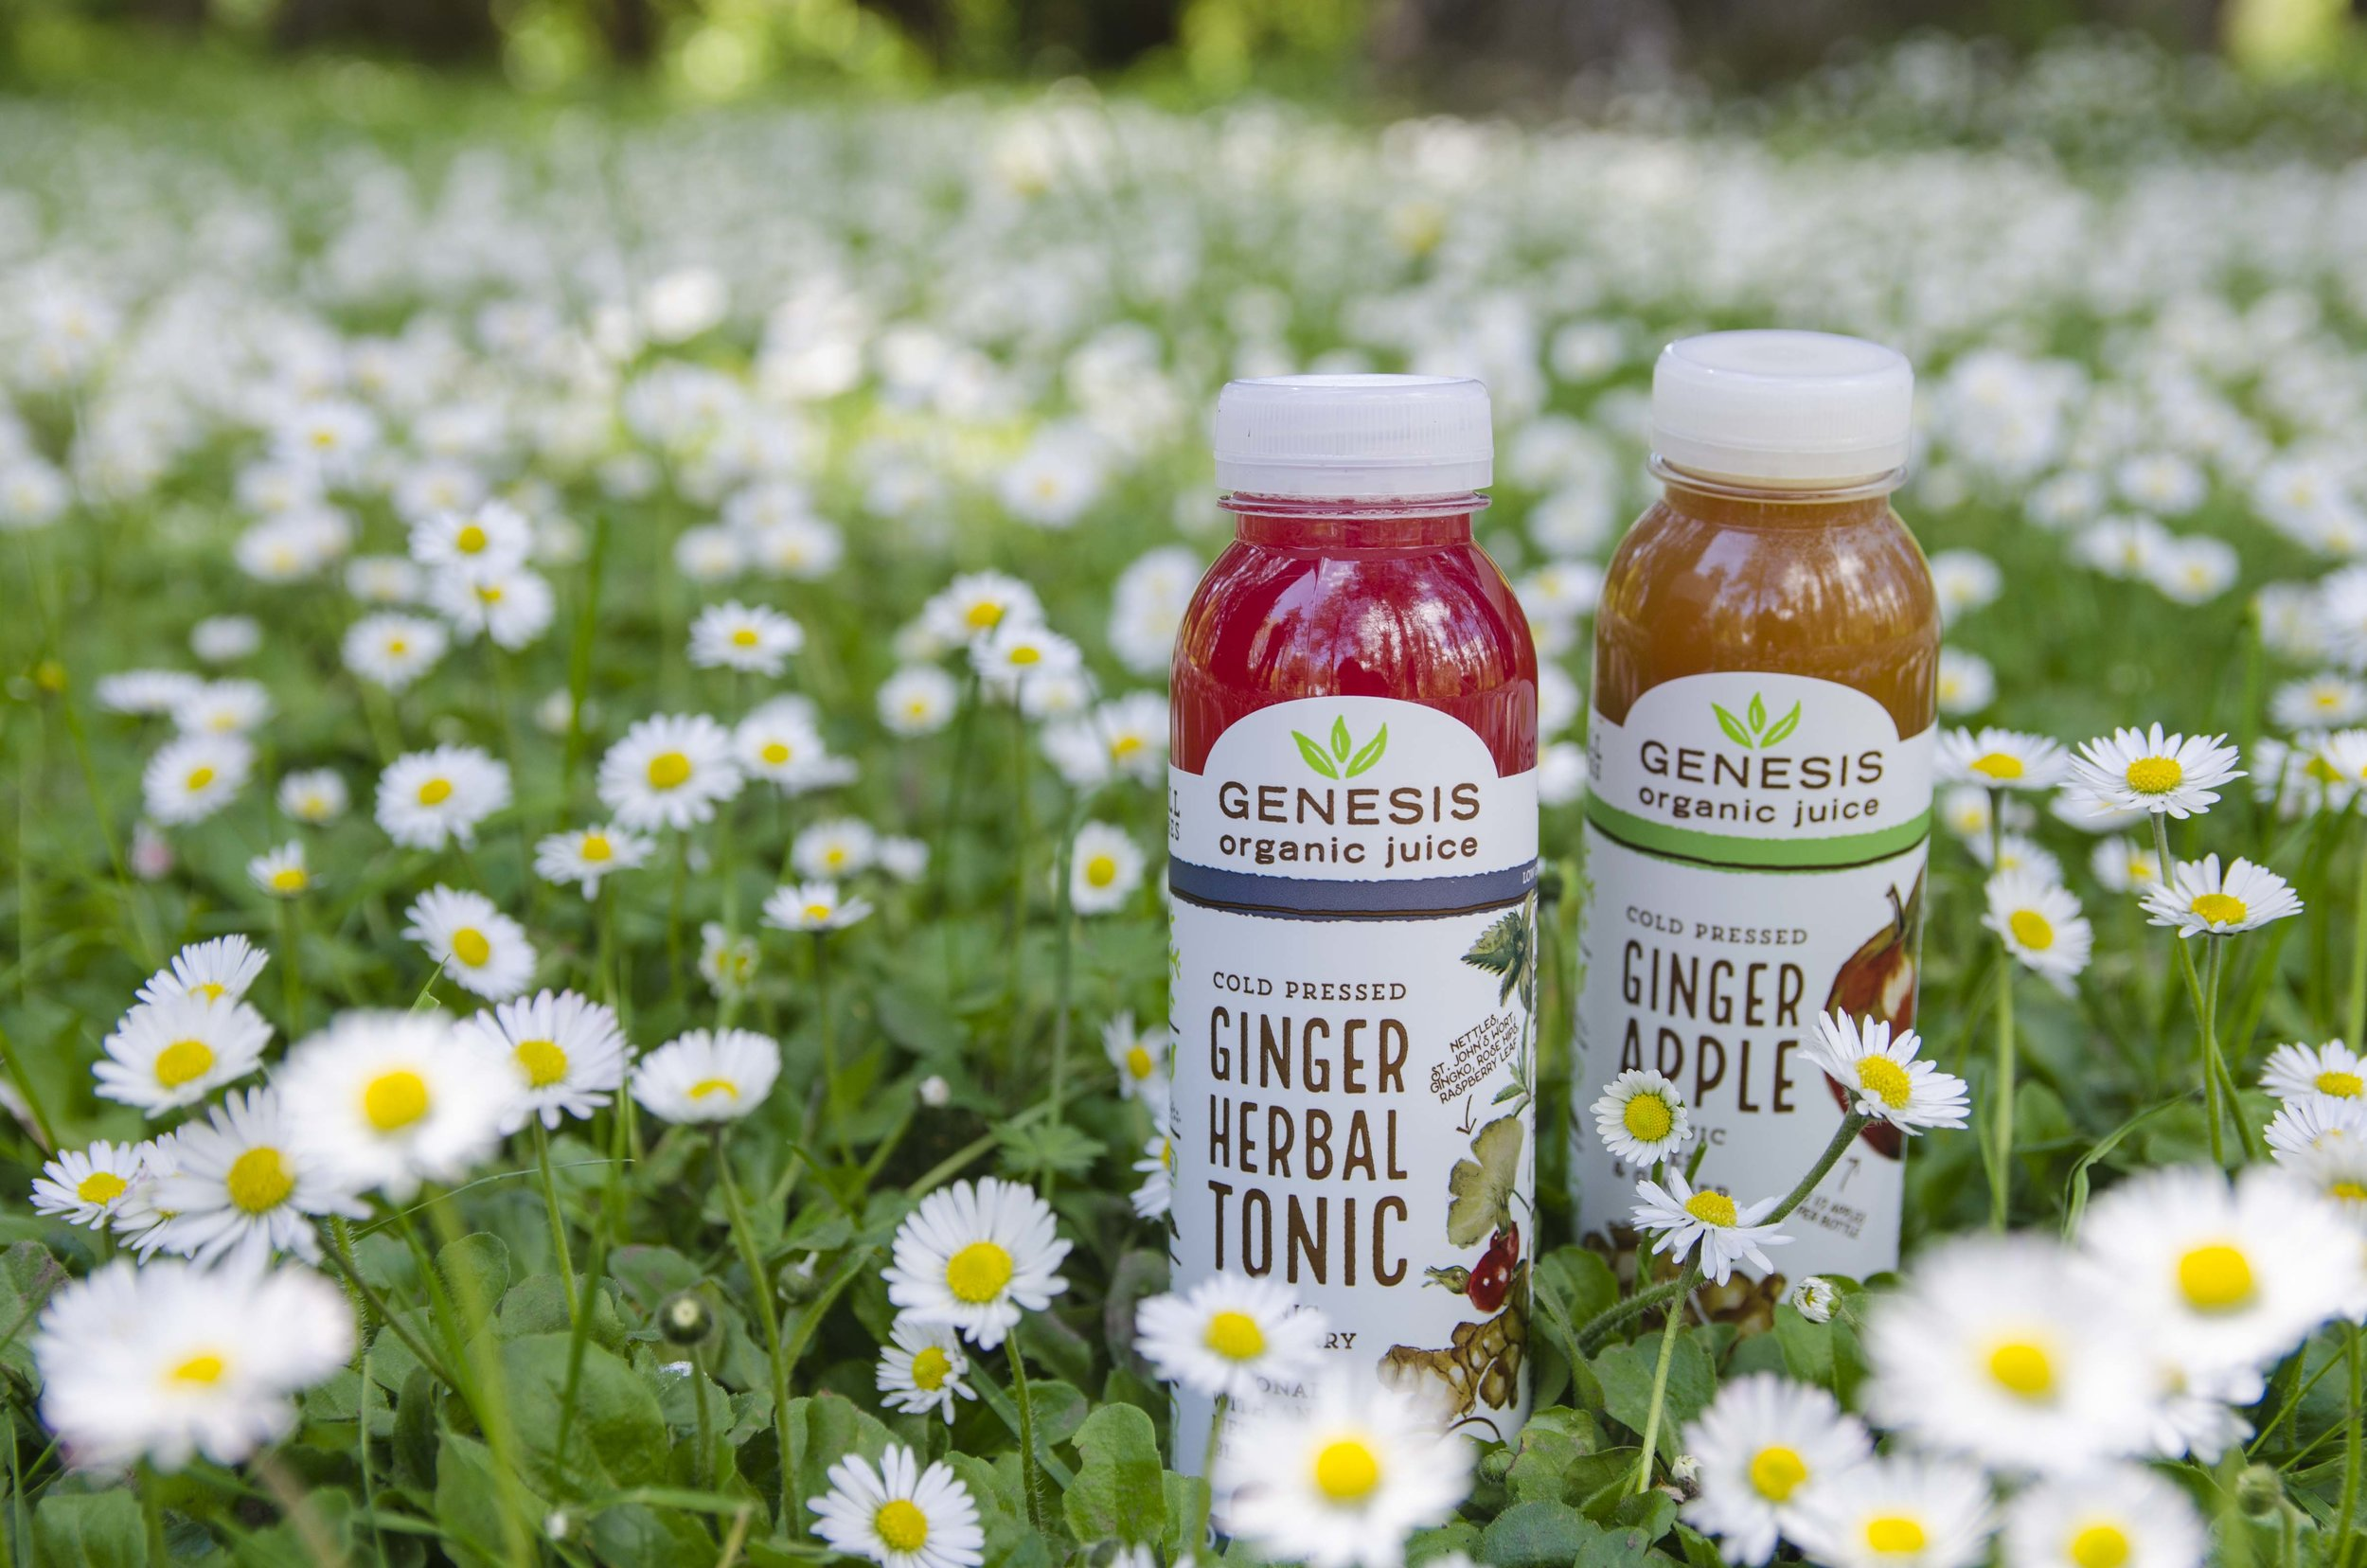 Genesis Juice - In 2017, Genesis Juice rebranded all of its cold pressed juices. I captured product photography of the entire line.